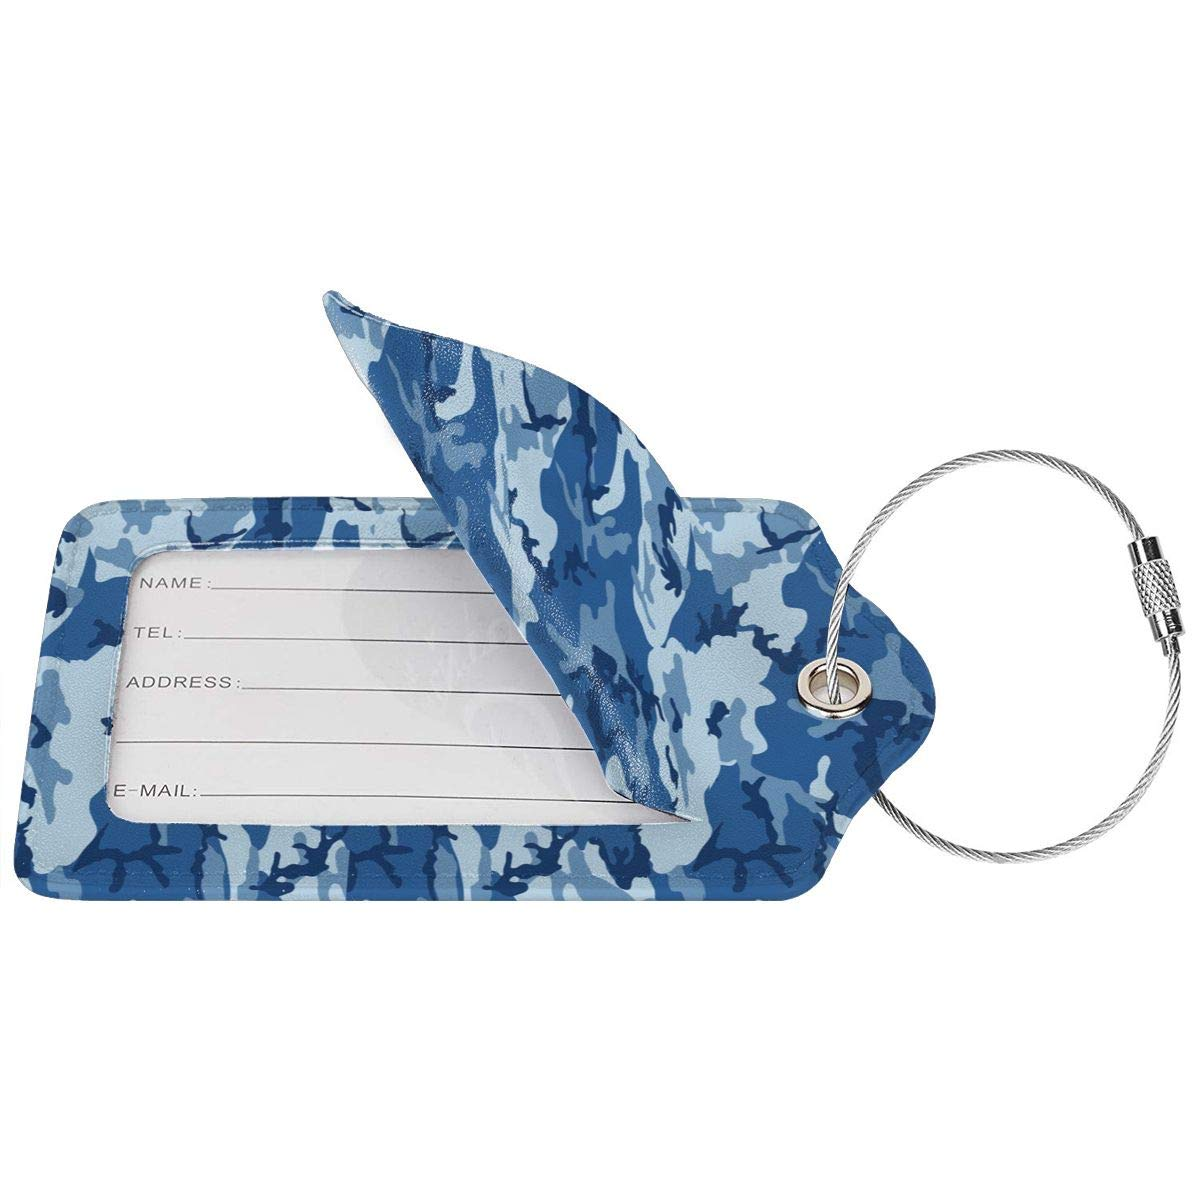 Key Tags for Cruise Ships Honeymoon Gift Leather Luggage Tags Full Privacy Cover and Stainless Steel Loop 1 2 4 Pcs Set Sea Blue Army Camouflage 3D Print 2.7 x 4.6 Blank Tag